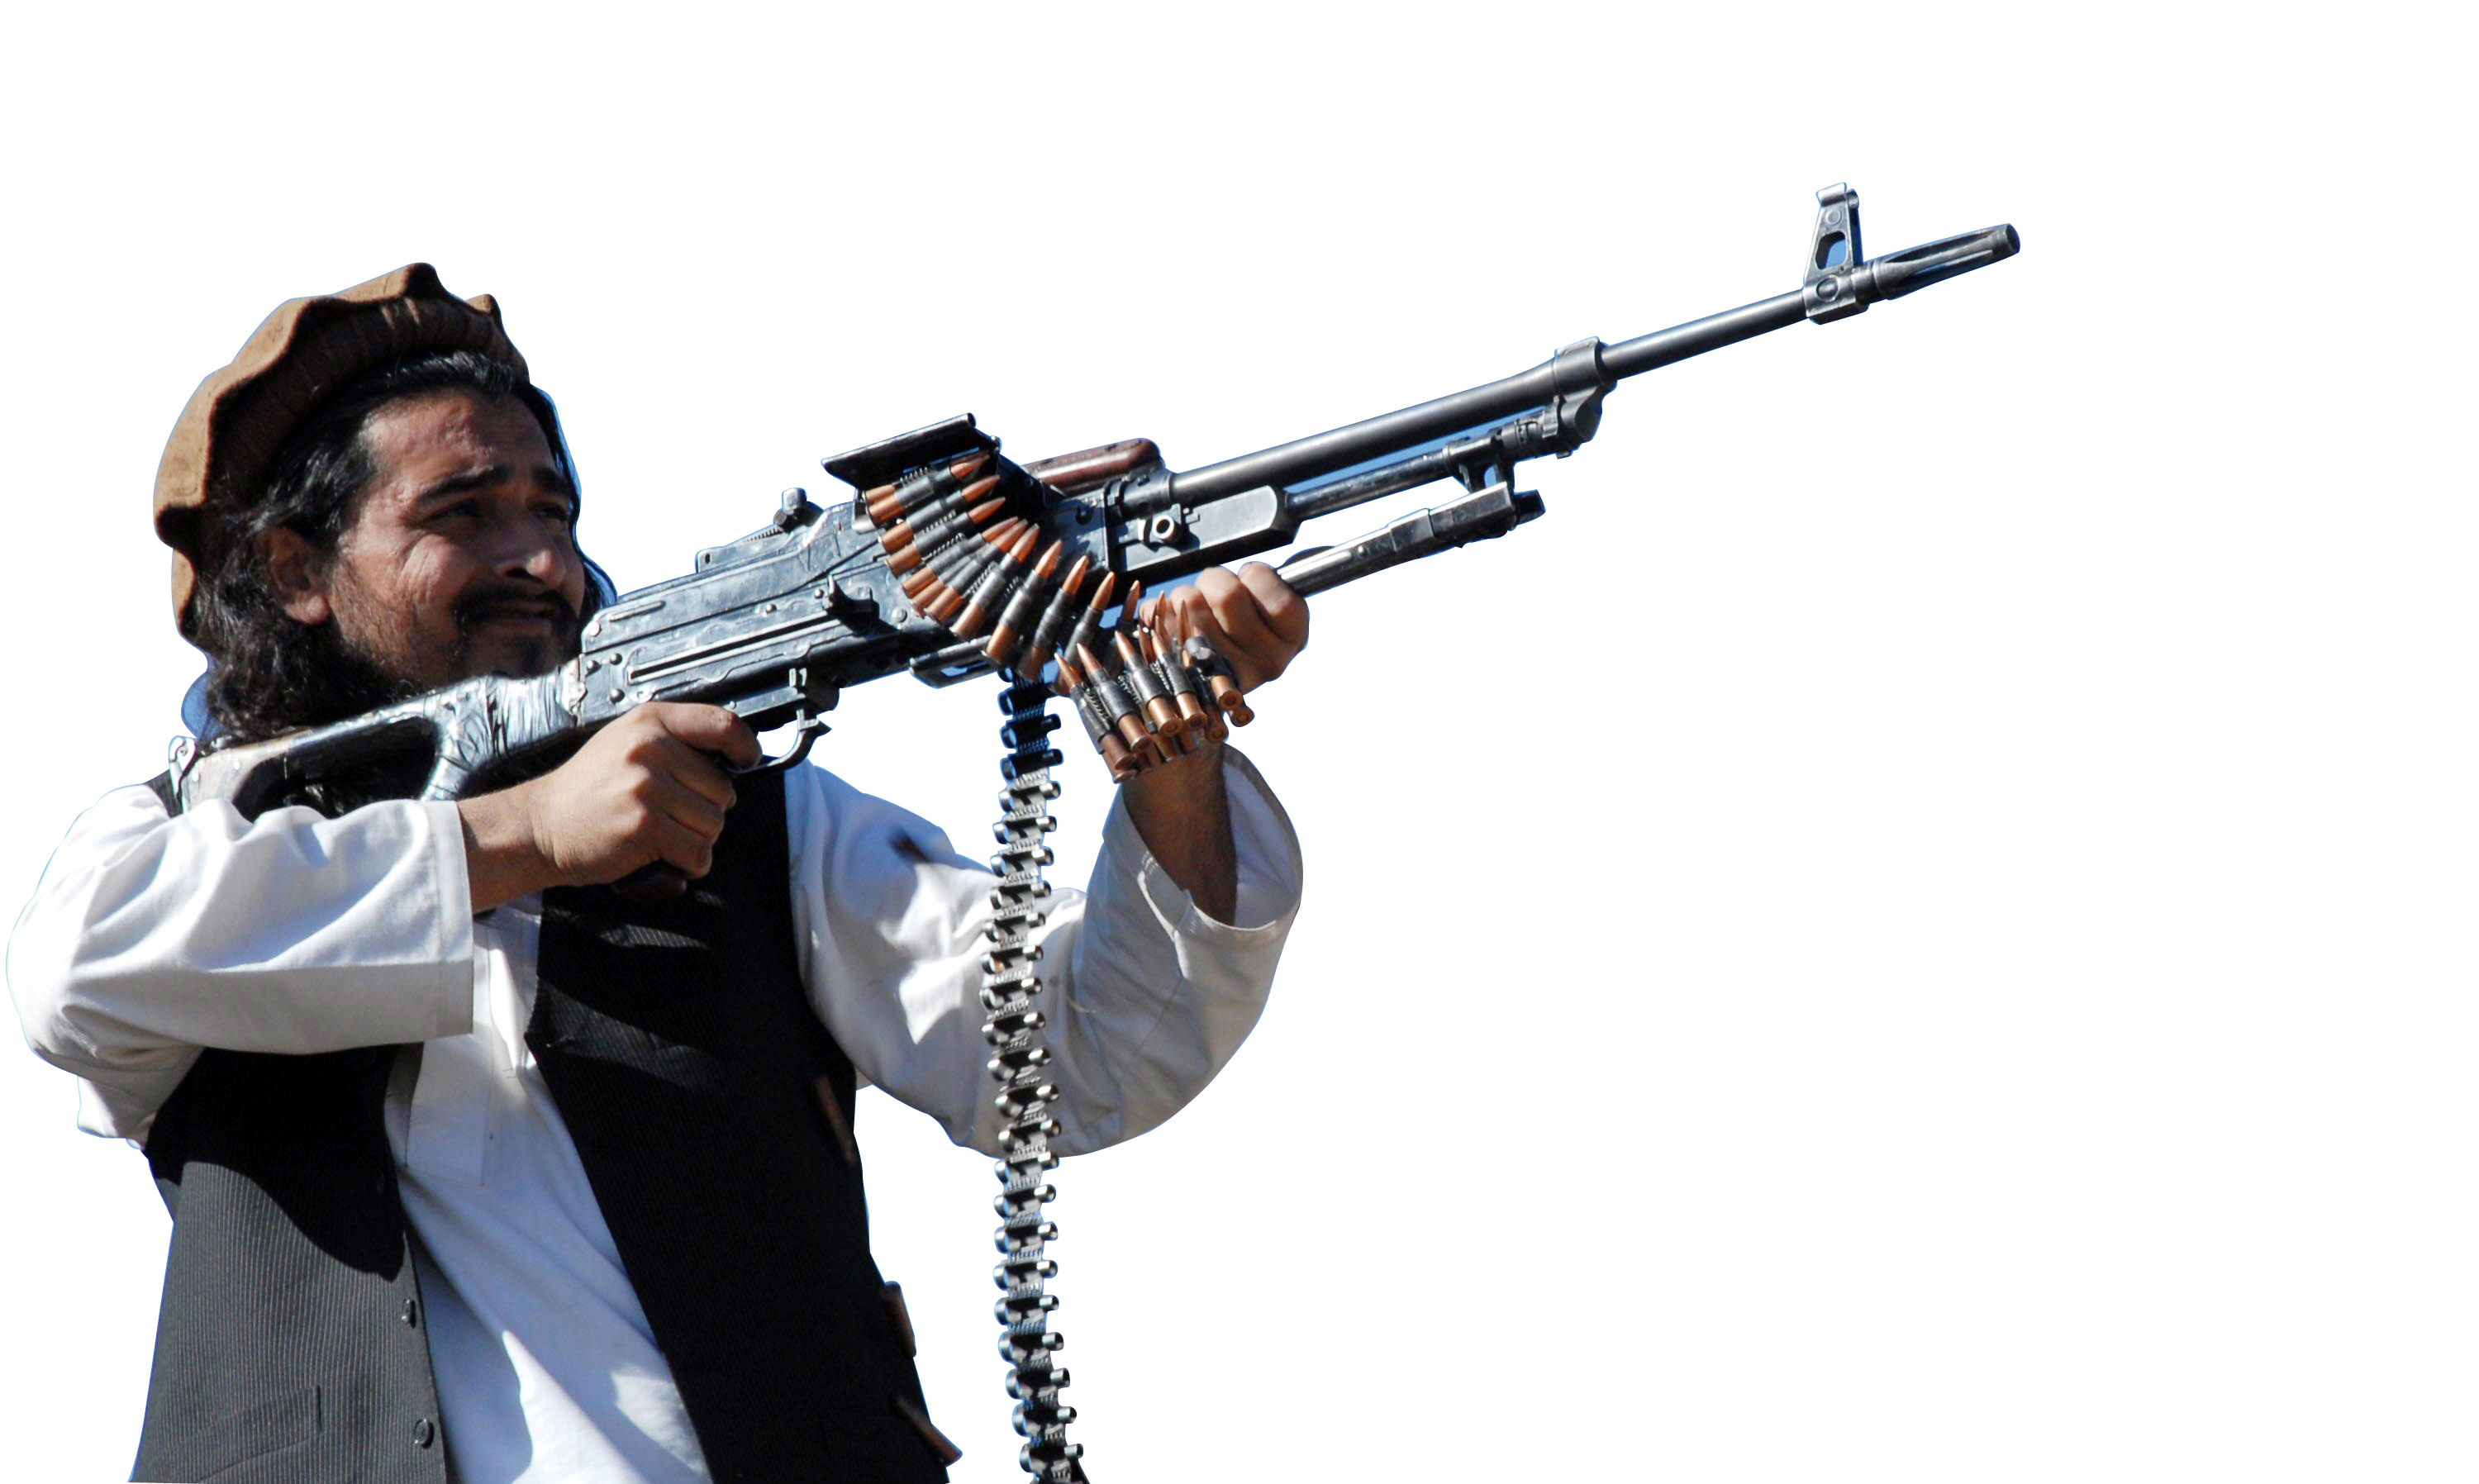 FILES-PAKISTAN-UNREST-NORTHWEST-TALIBAN